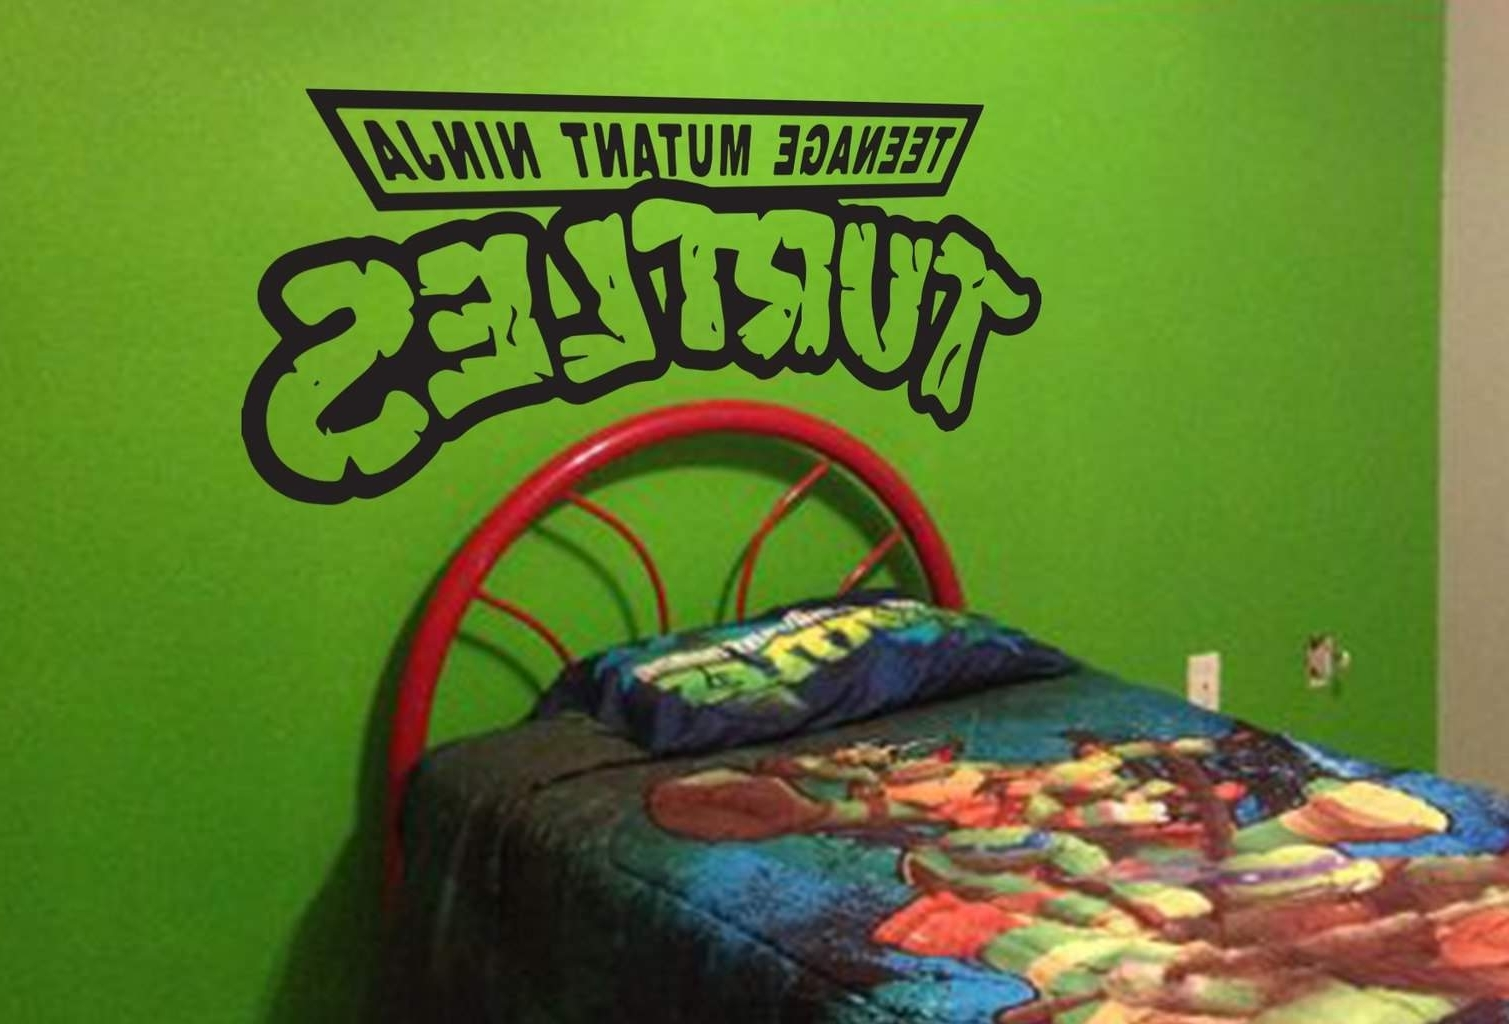 Turtles Are Here To Protect, Ninjaturtles Wall Decal With Regard To Recent Ninja Turtle Wall Art (View 7 of 15)